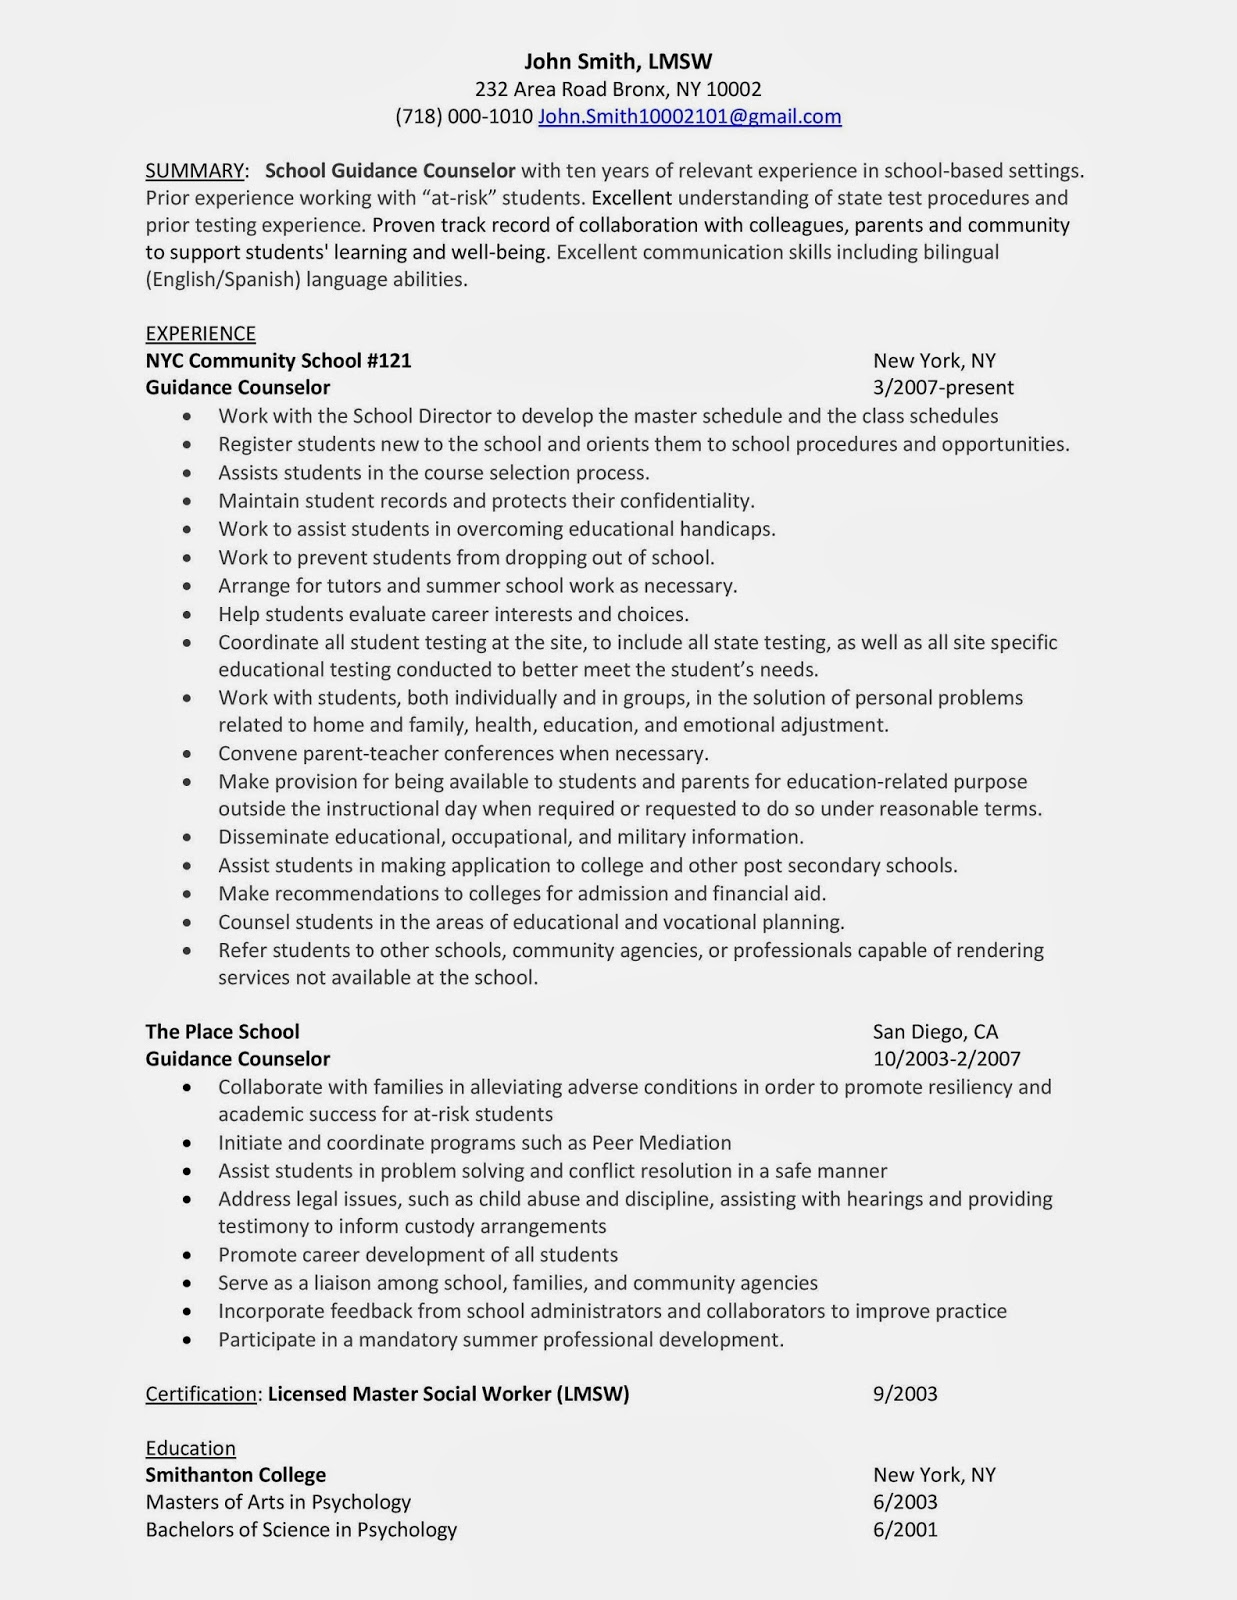 Wrestling Resume School Guidance Counselor Sample Resume Career Advice Pro